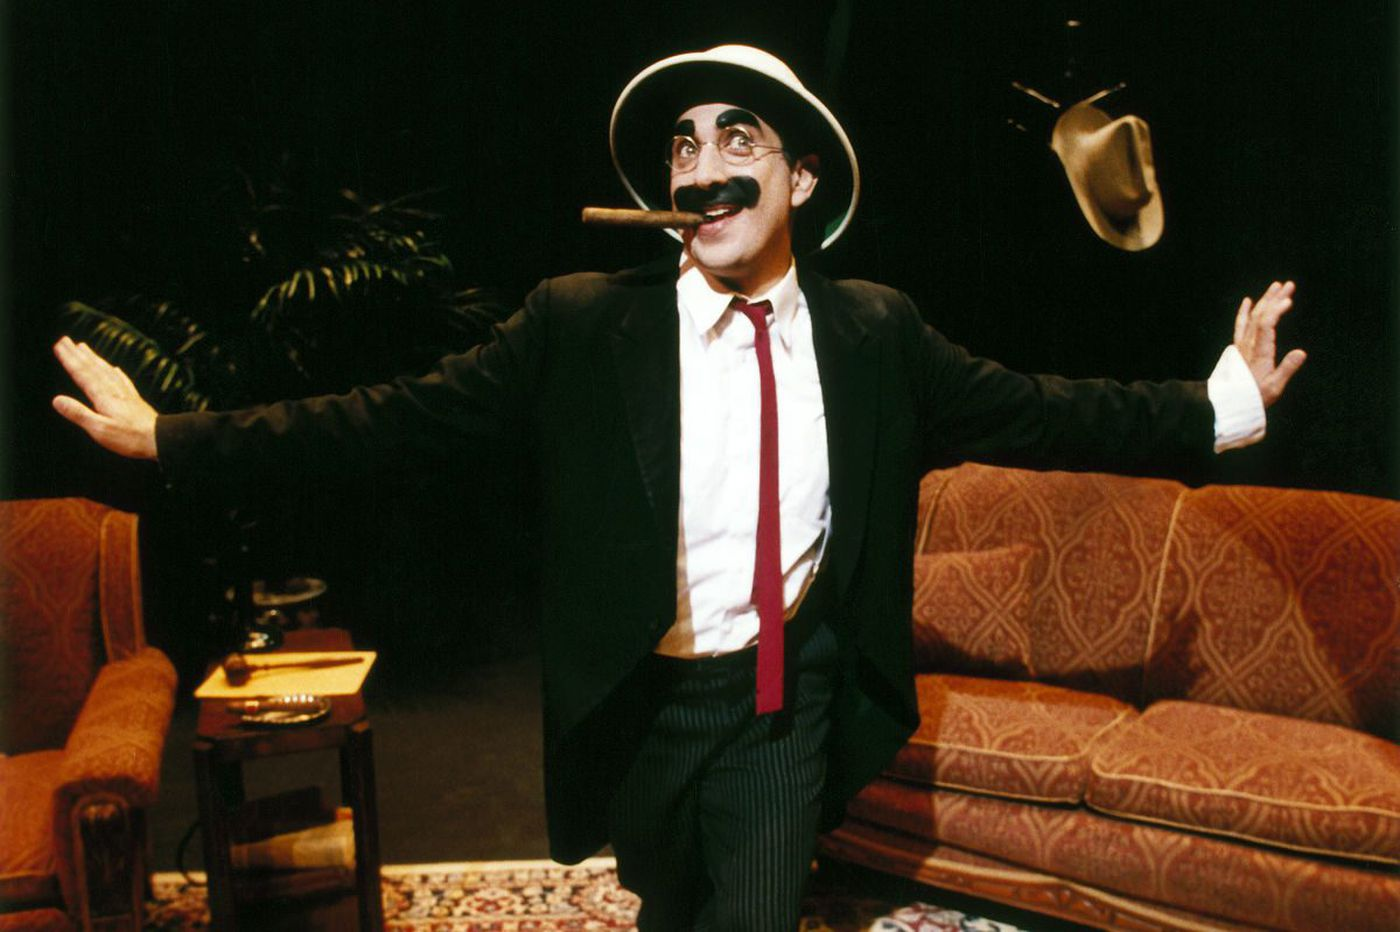 Frank Ferrante in 'Groucho': A loving look at a comic hero (and crowd-worker)